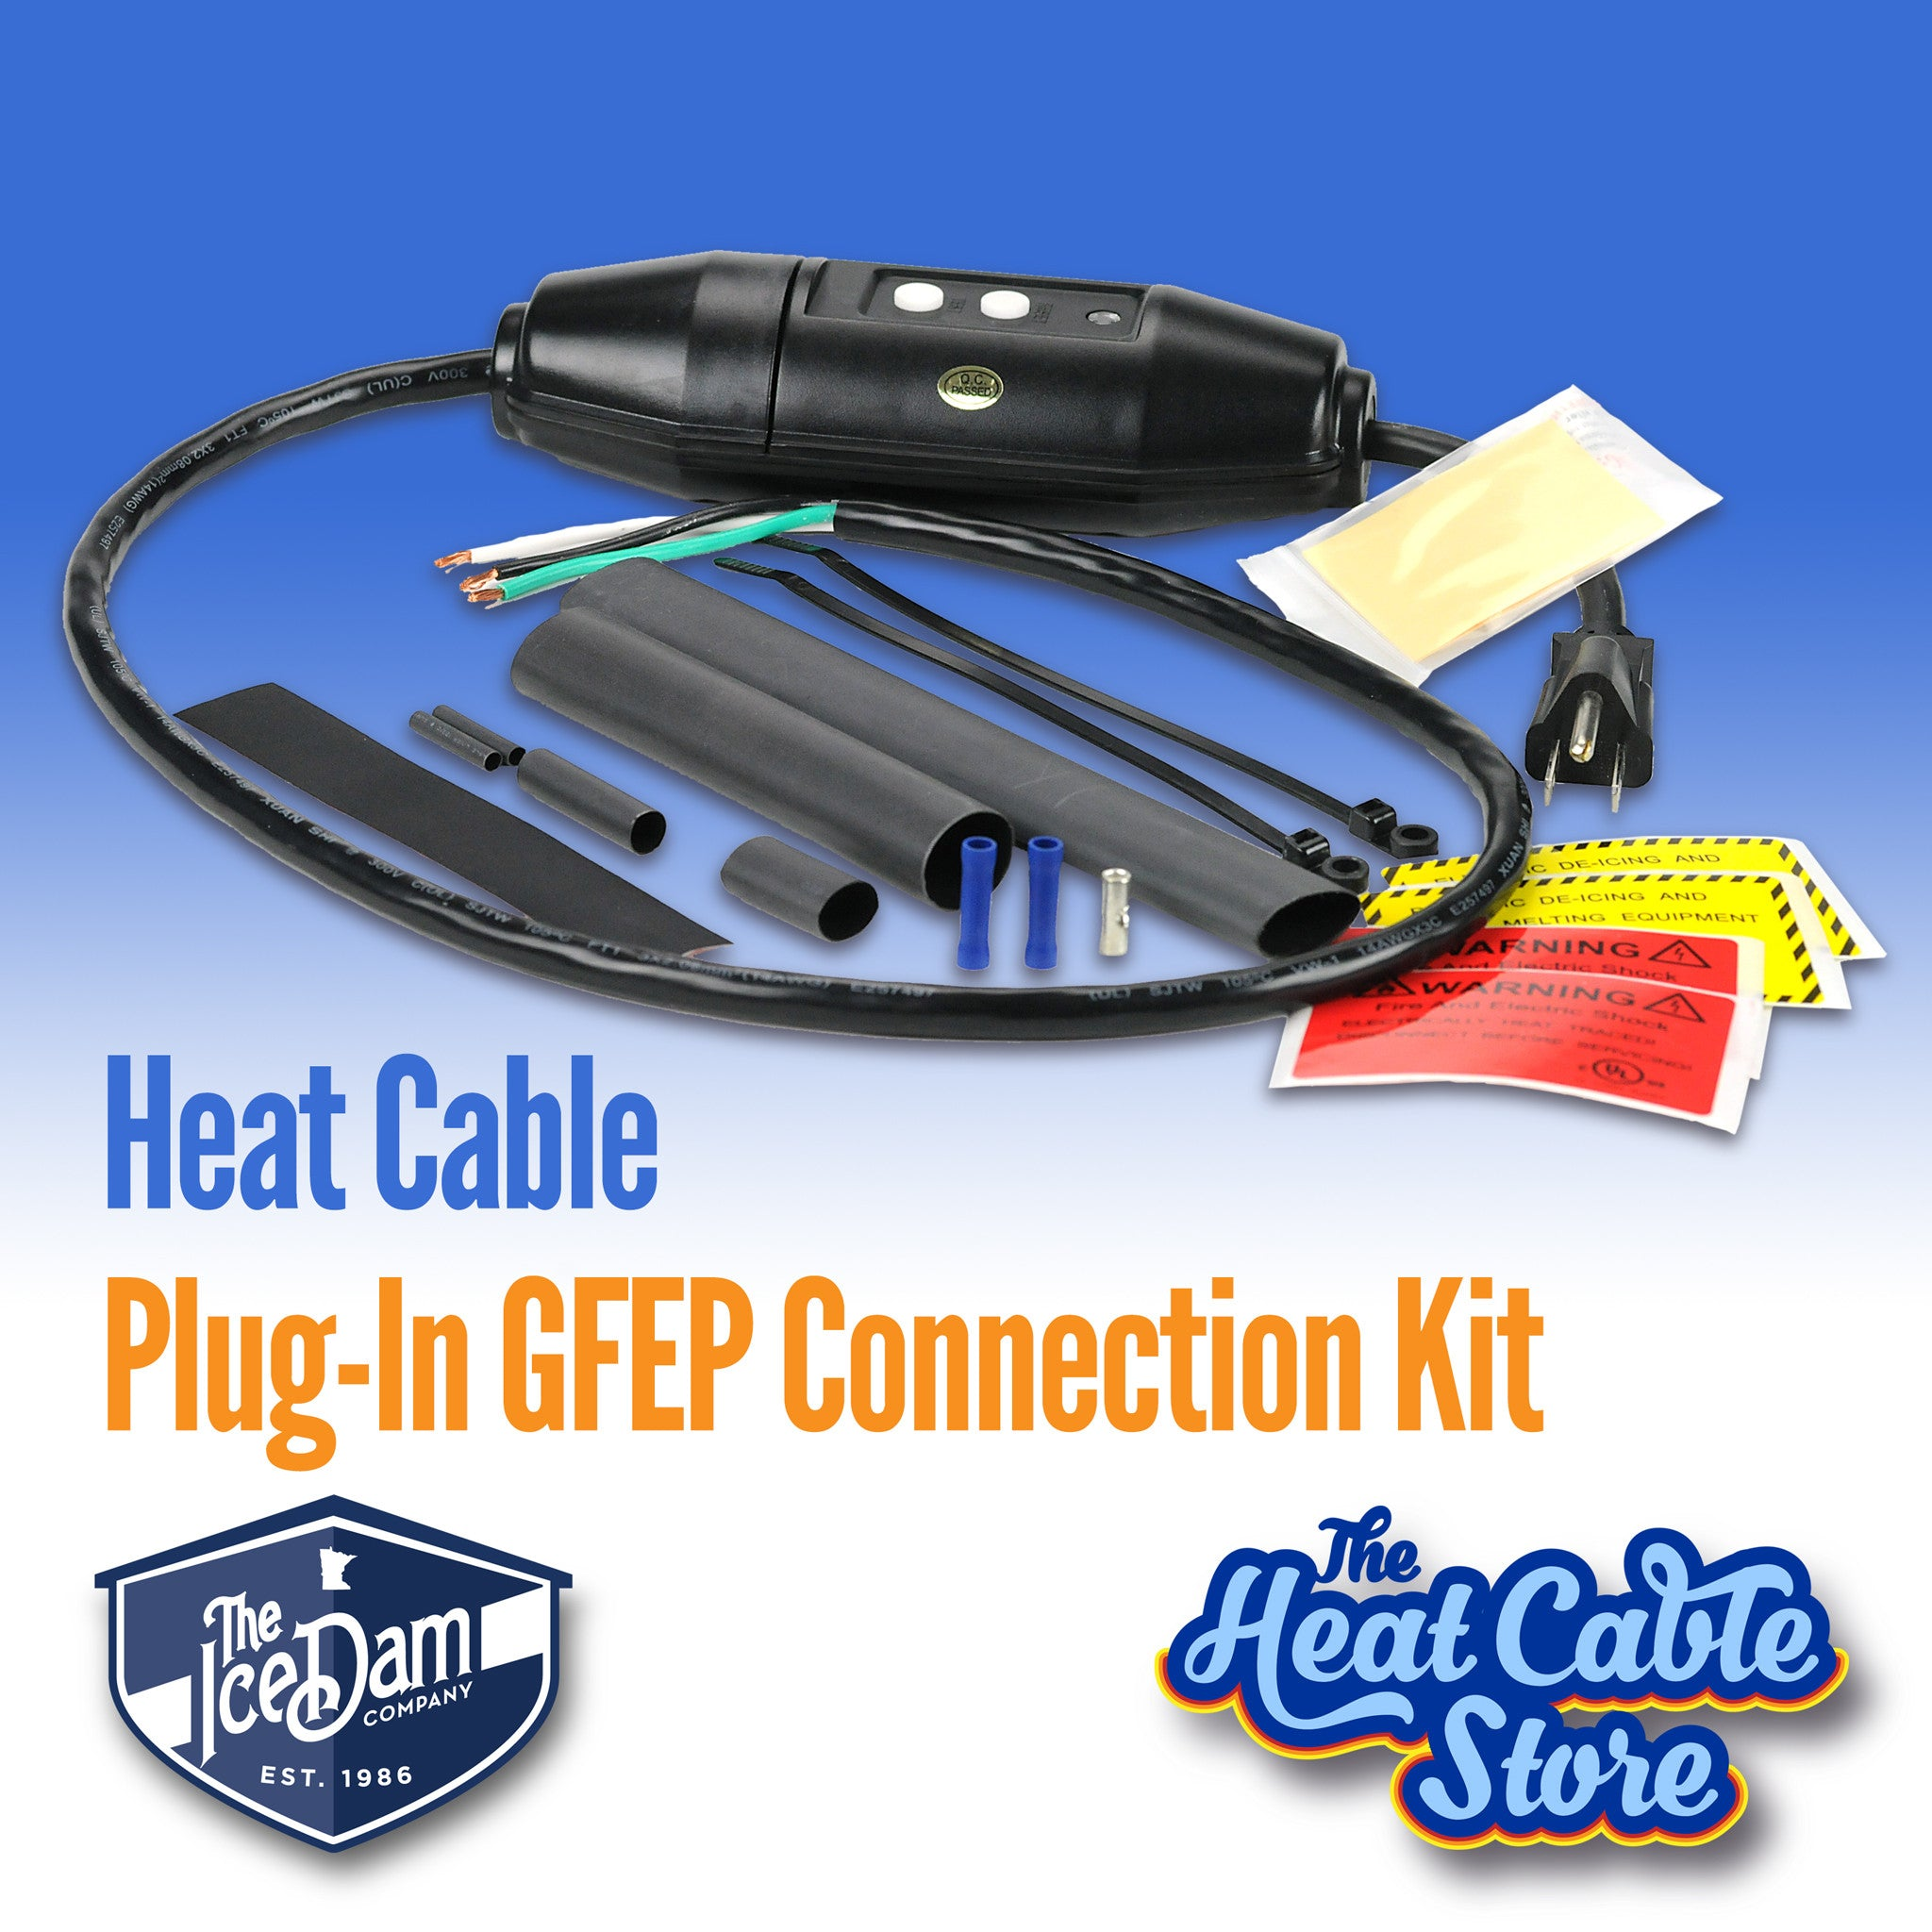 Heat Cable Plug-In Connection Kit with 120V GFEP Device